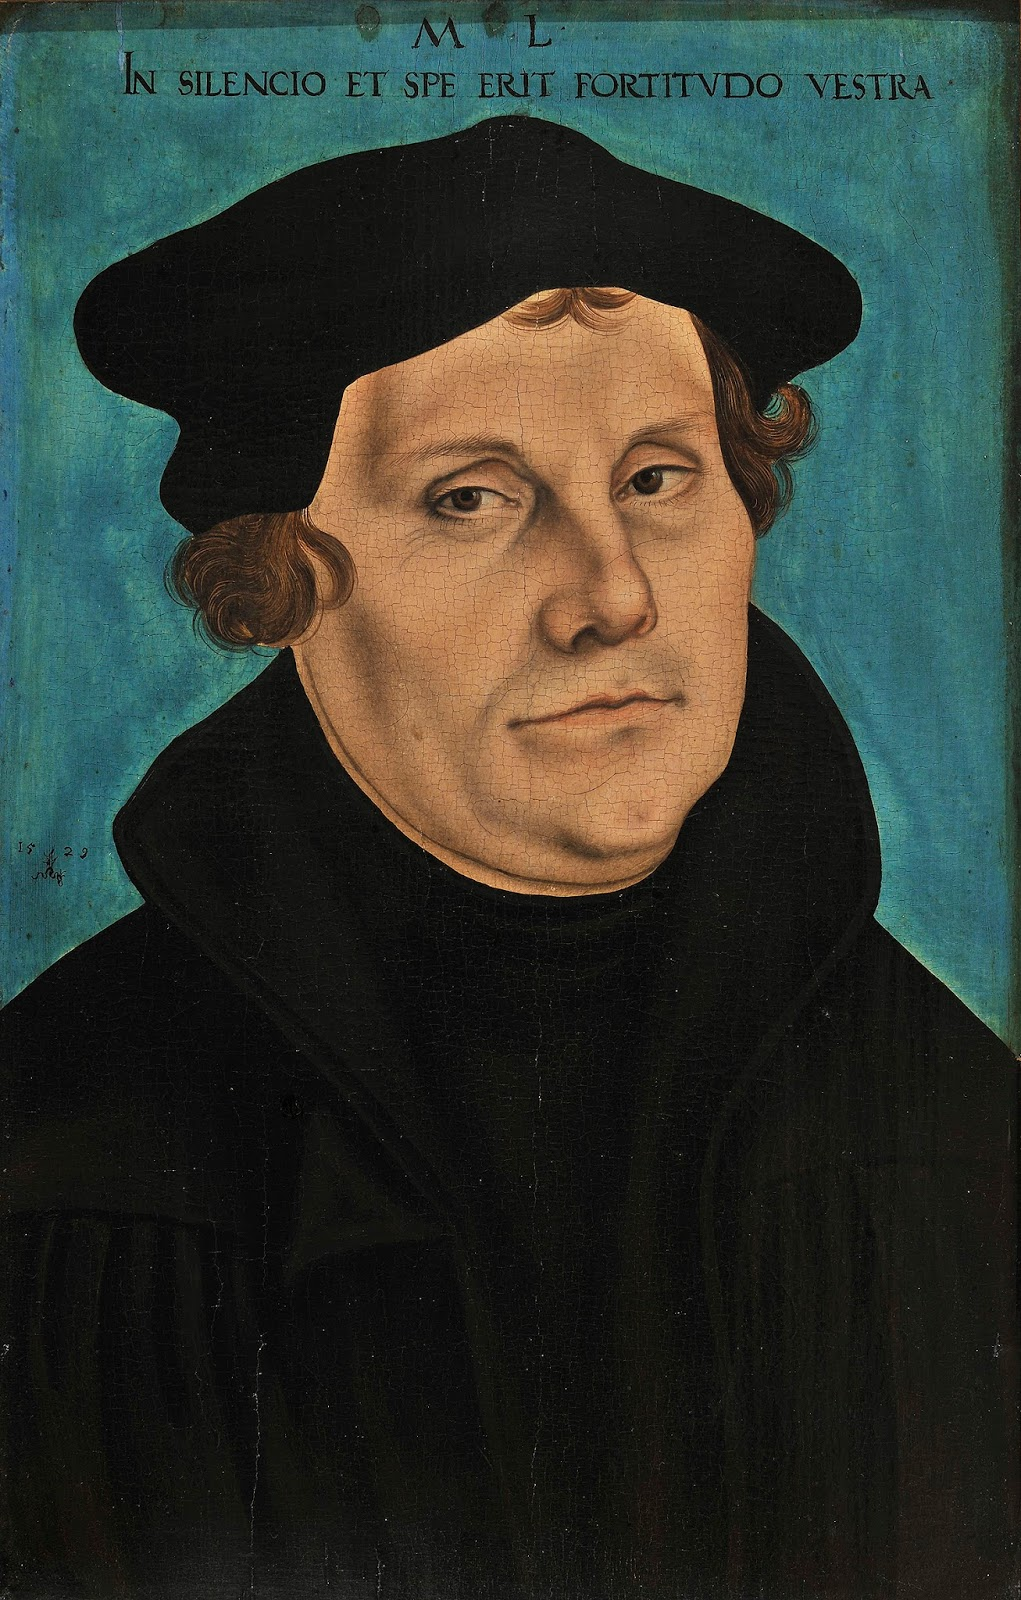 the reformation martin luther and the Martin luther, a man of spectacular thoughts on the catholic community during his time he had affected society in the 1500s he took part in what is currently known today as the protestant reformation.